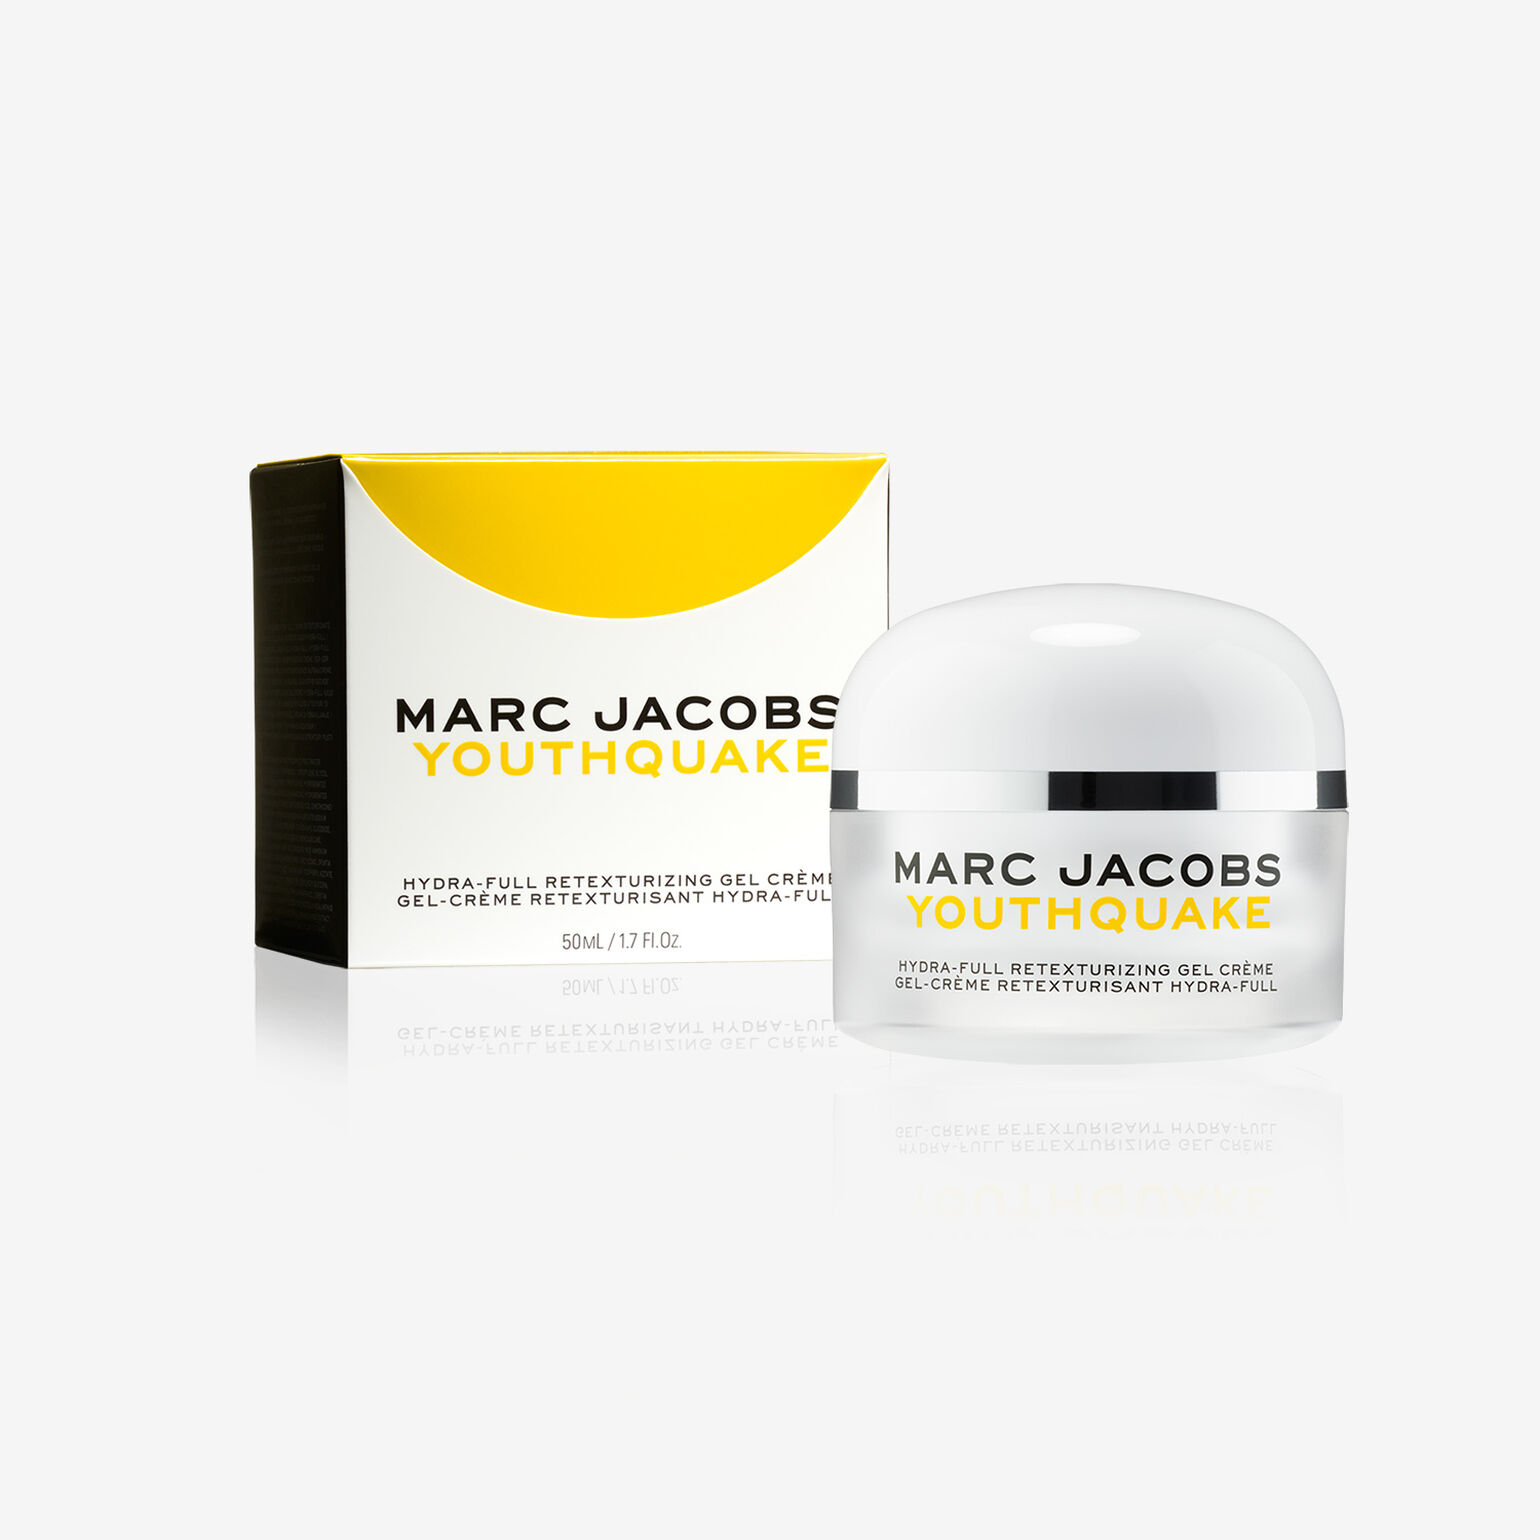 Marc Jacobs - Youthquake